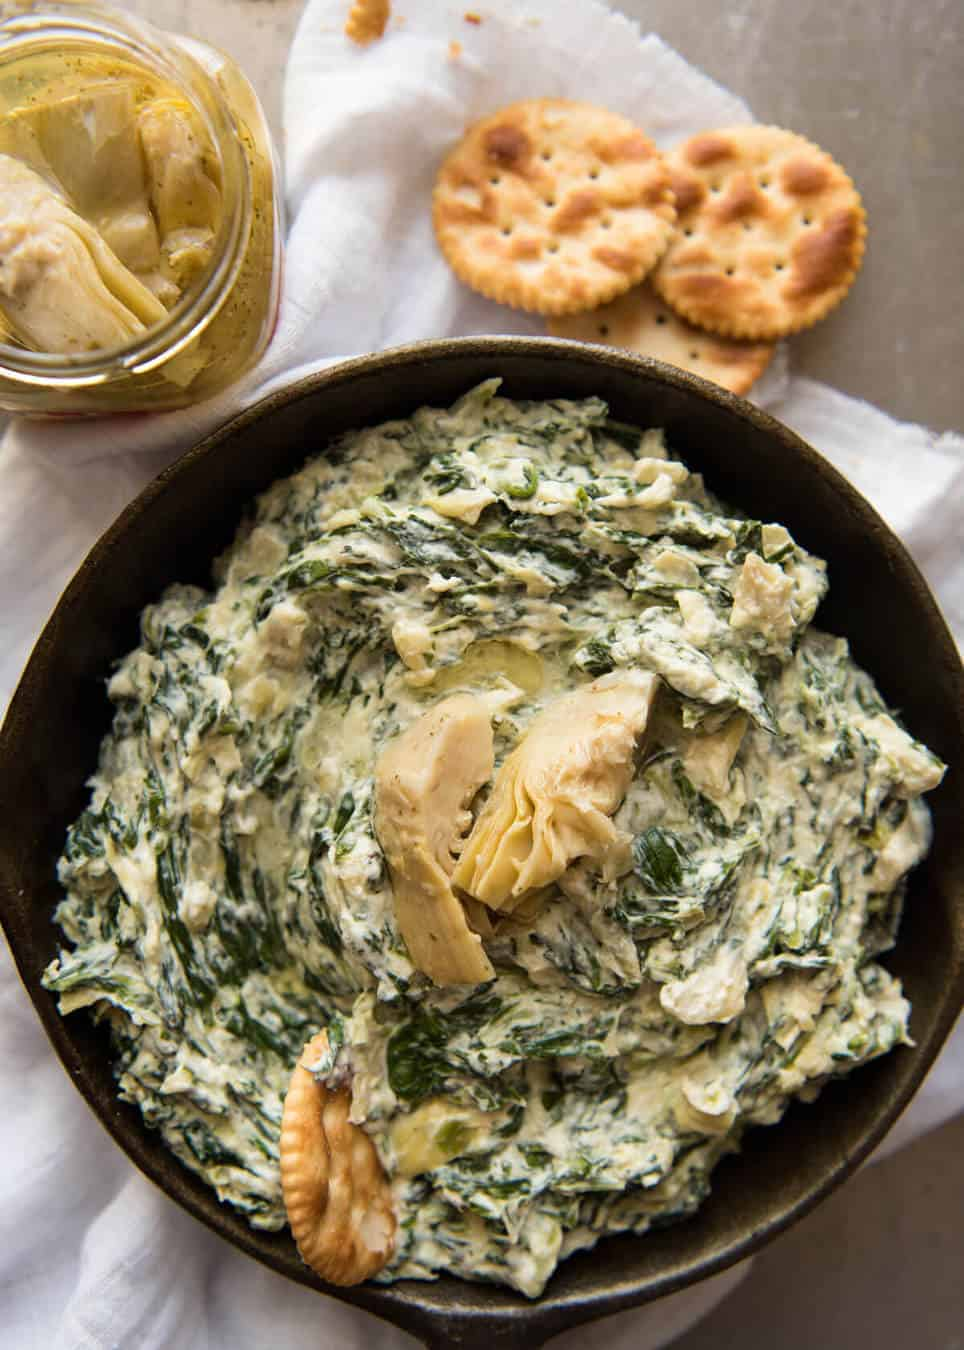 The most popular dip at any party - Spinach and Artichoke Dip! Super quick to make. www.recipetineats.com